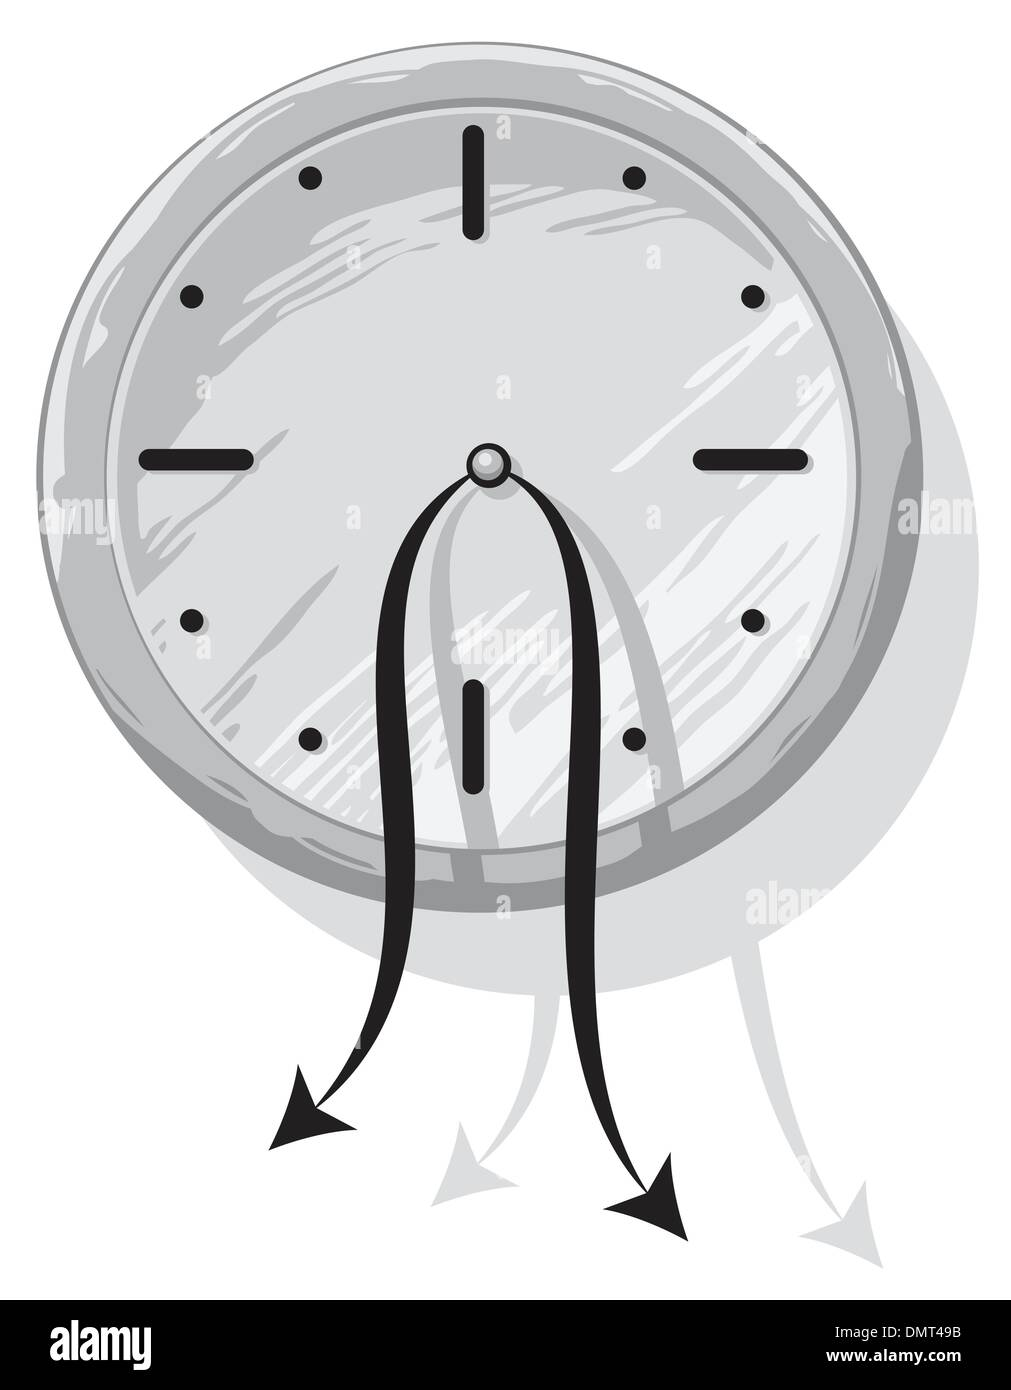 Clock with weak hanging pointers - Stock Image